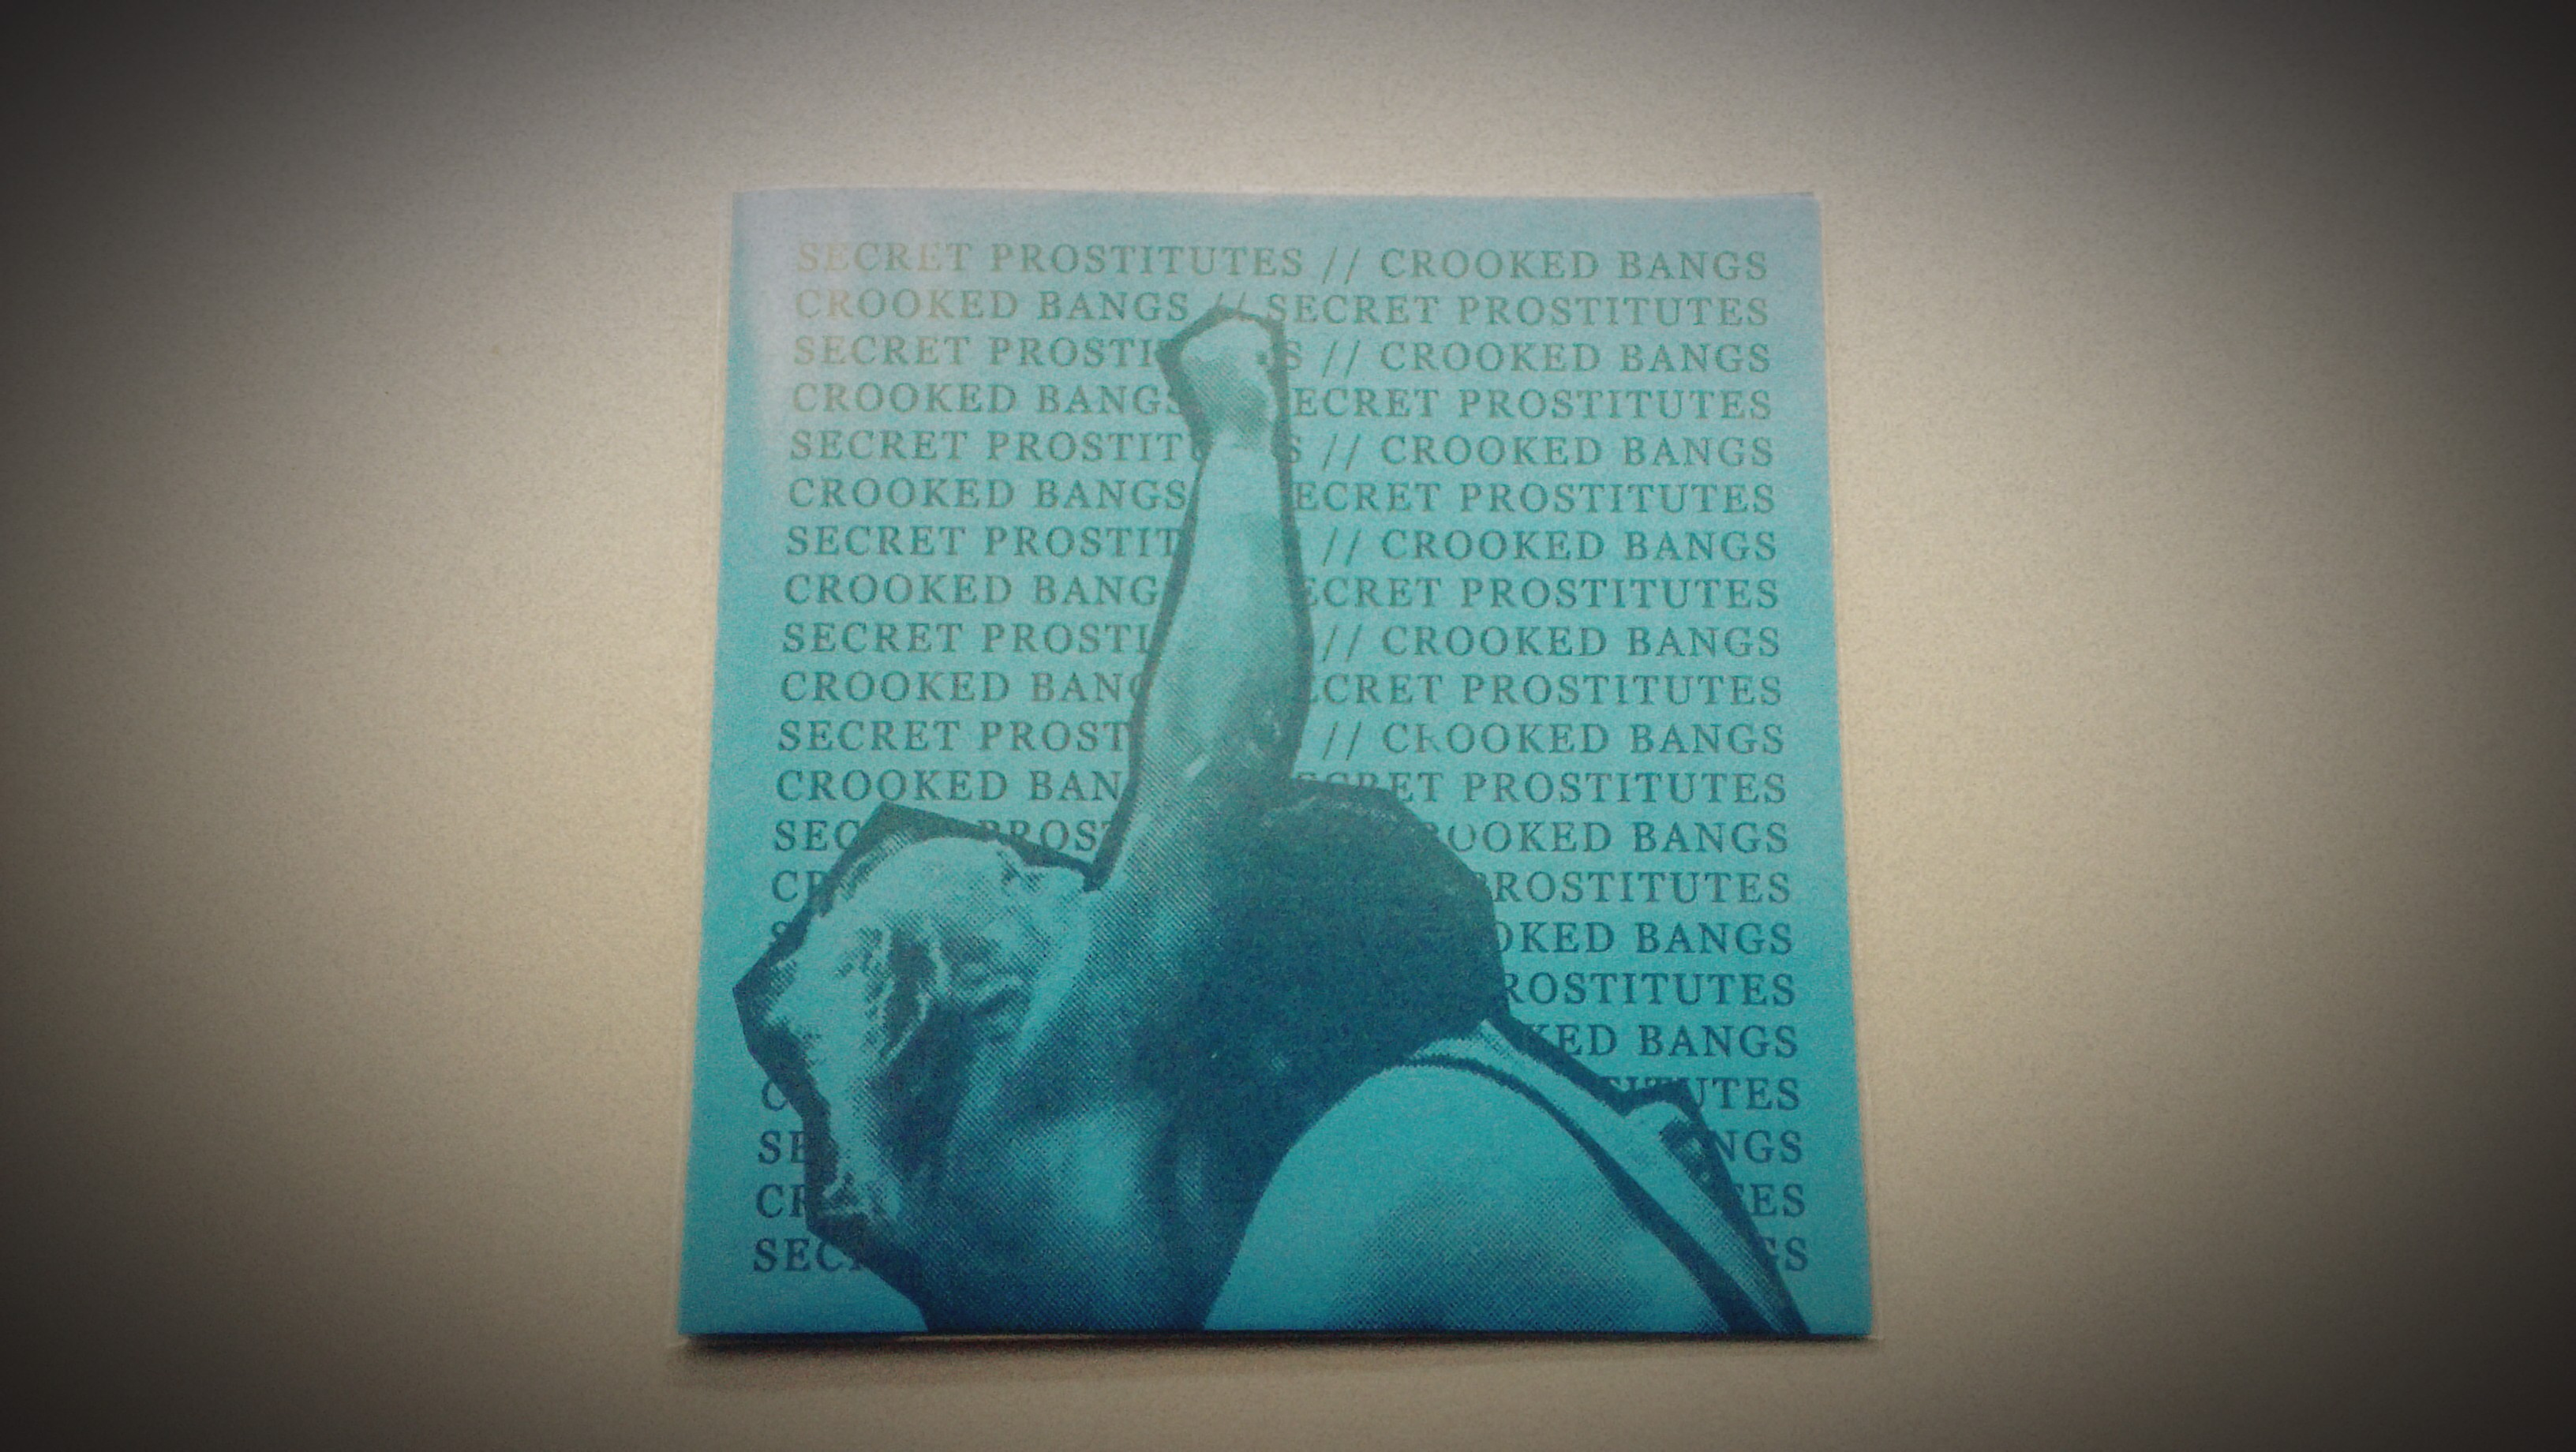 Secret Prostitutes / Crooked Bangs - Split EP Blue Version